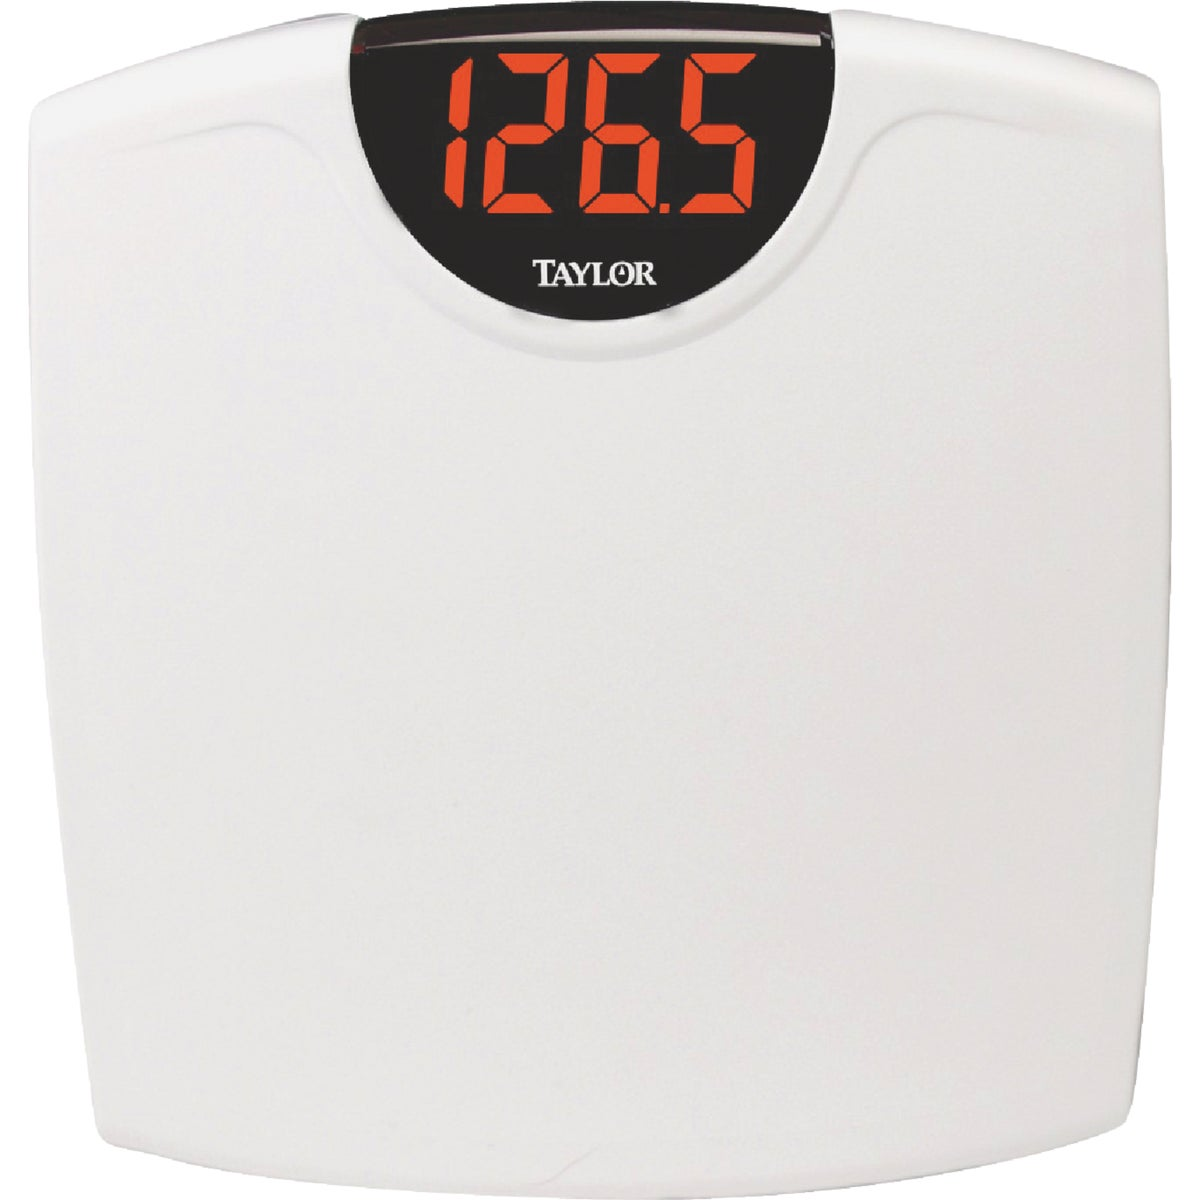 WHITE DIGITAL BATH SCALE - 98564012 by Taylor Precision